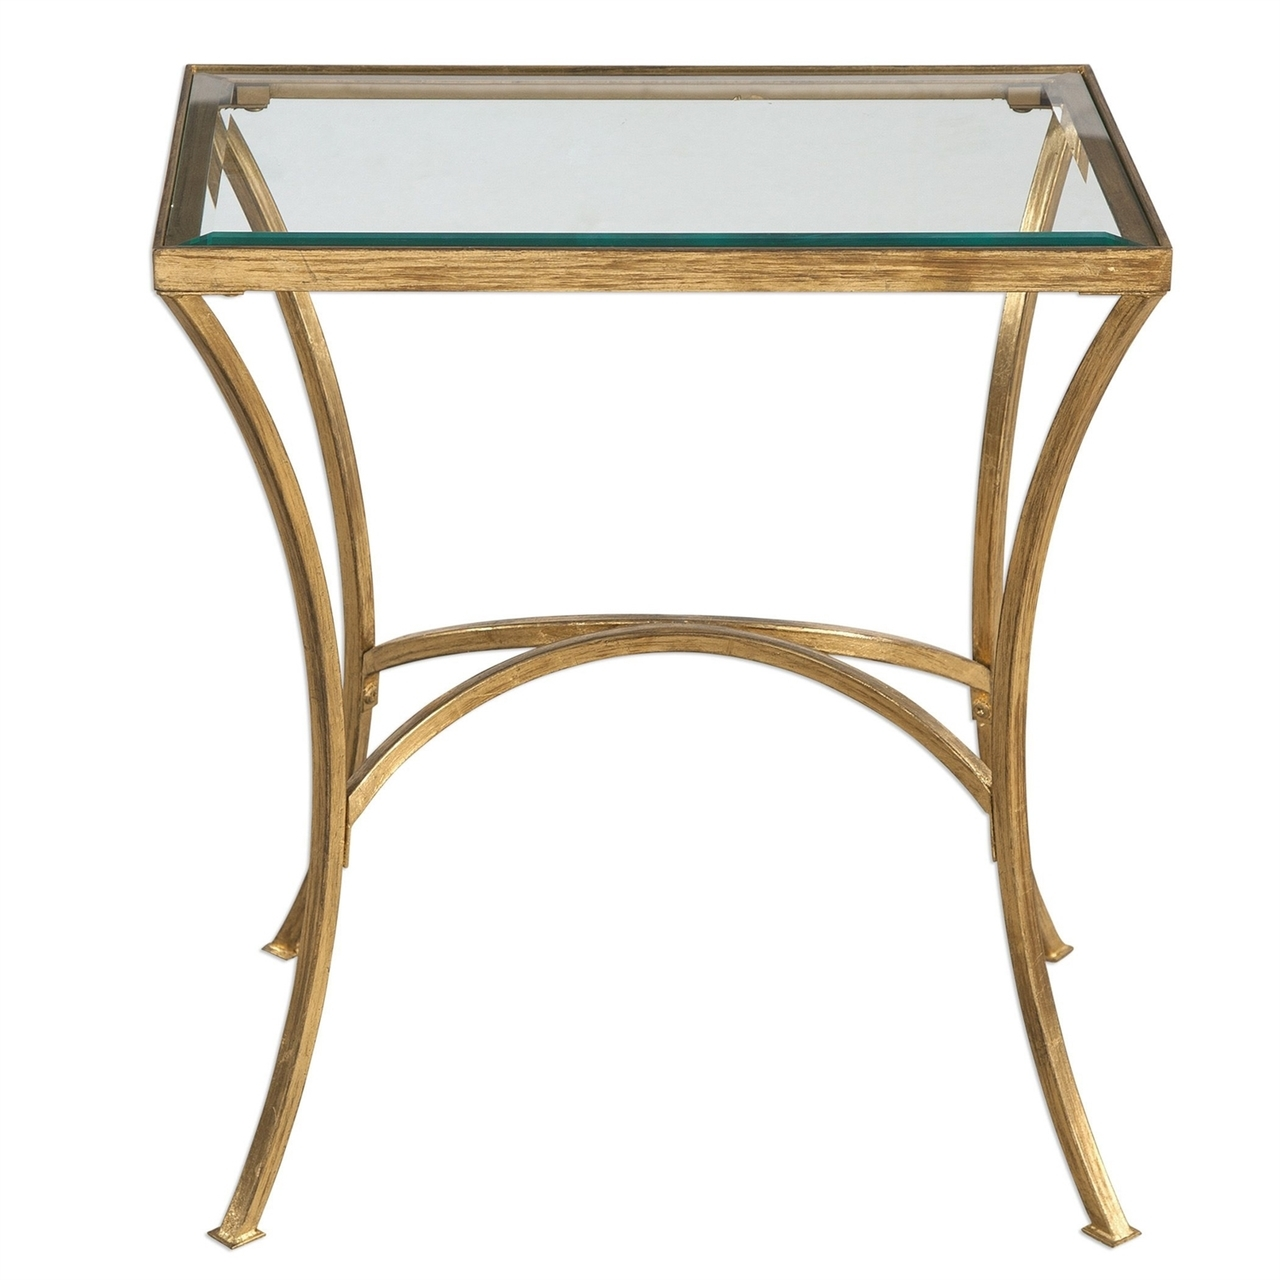 uttermost alayna gold end table traditional decor elegant furniture dstuc tables modern ideas broyhill patio chairs pallet garden magnussen karlin powell mirrored nightstand oak